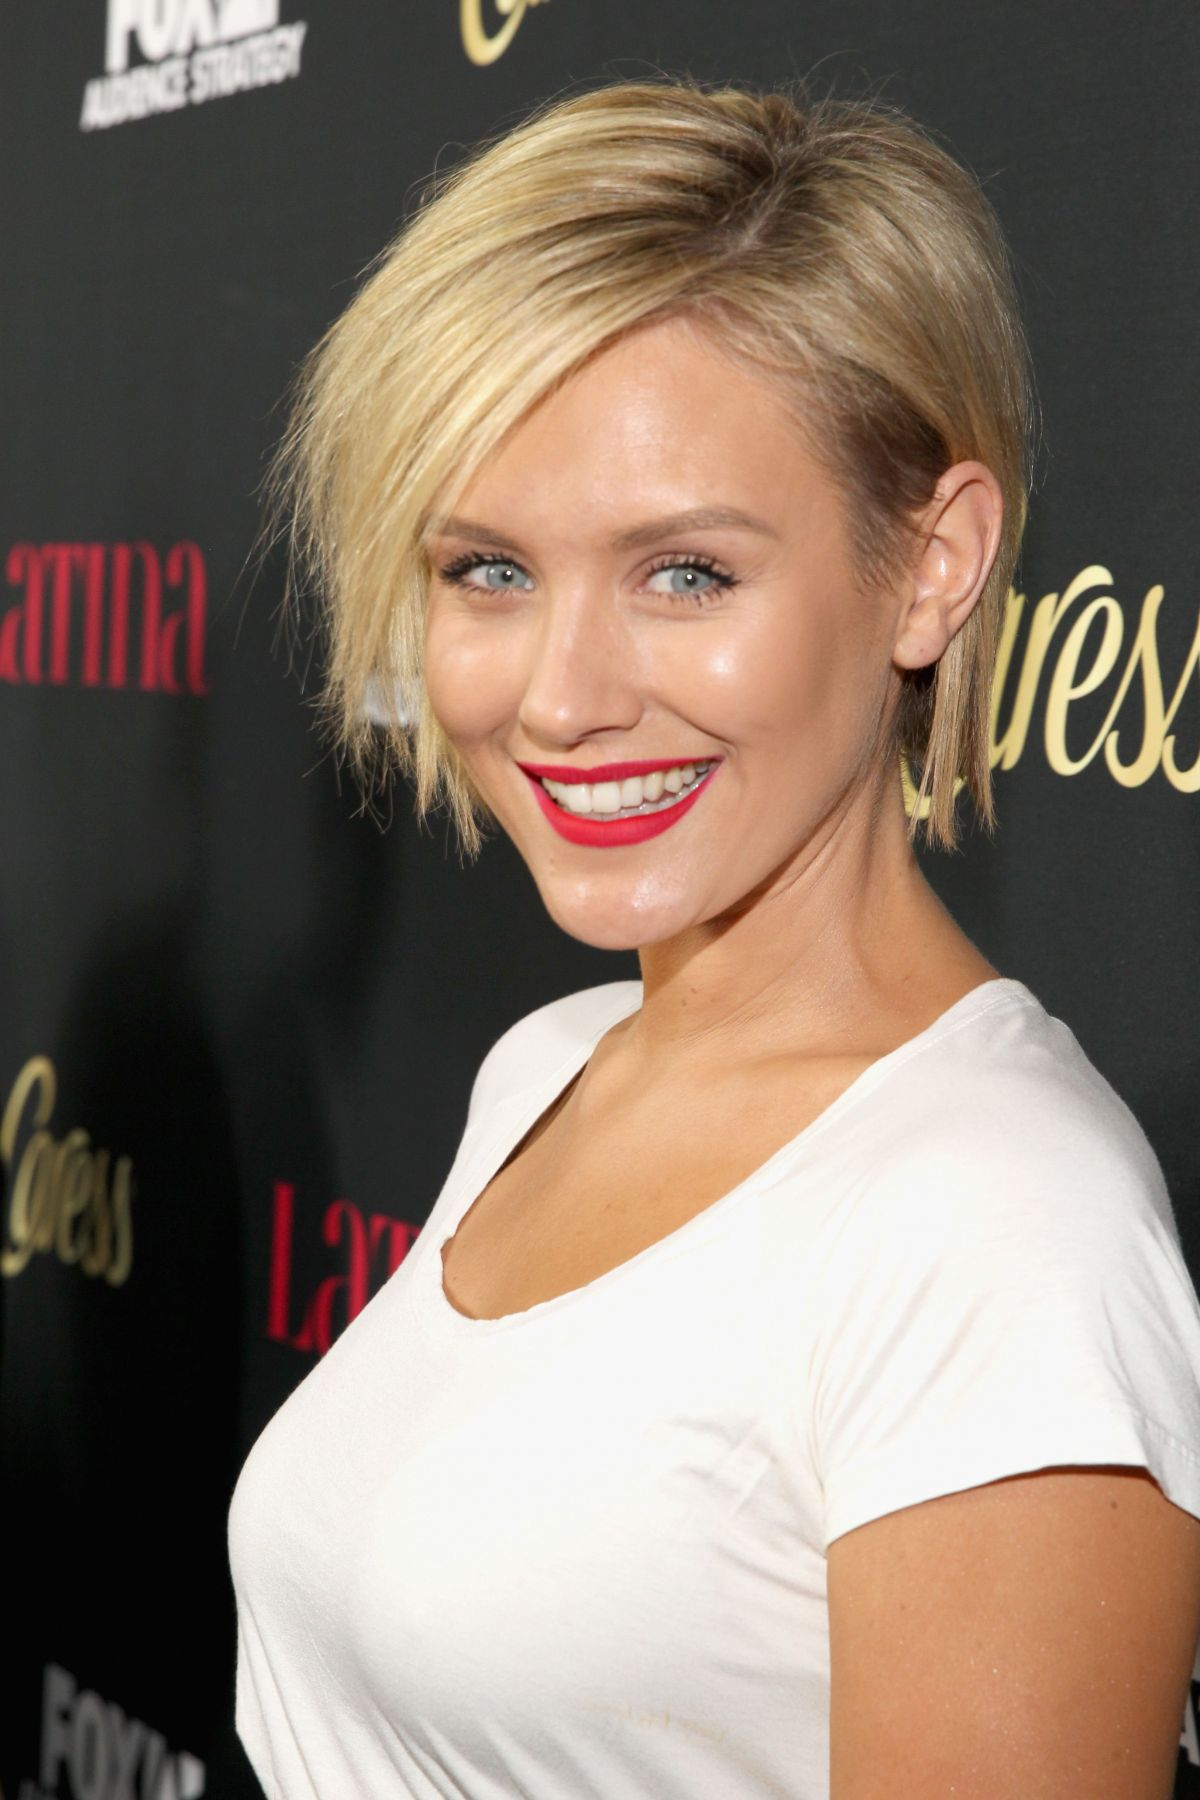 Nicky Whelan earned a  million dollar salary, leaving the net worth at 4.3 million in 2017